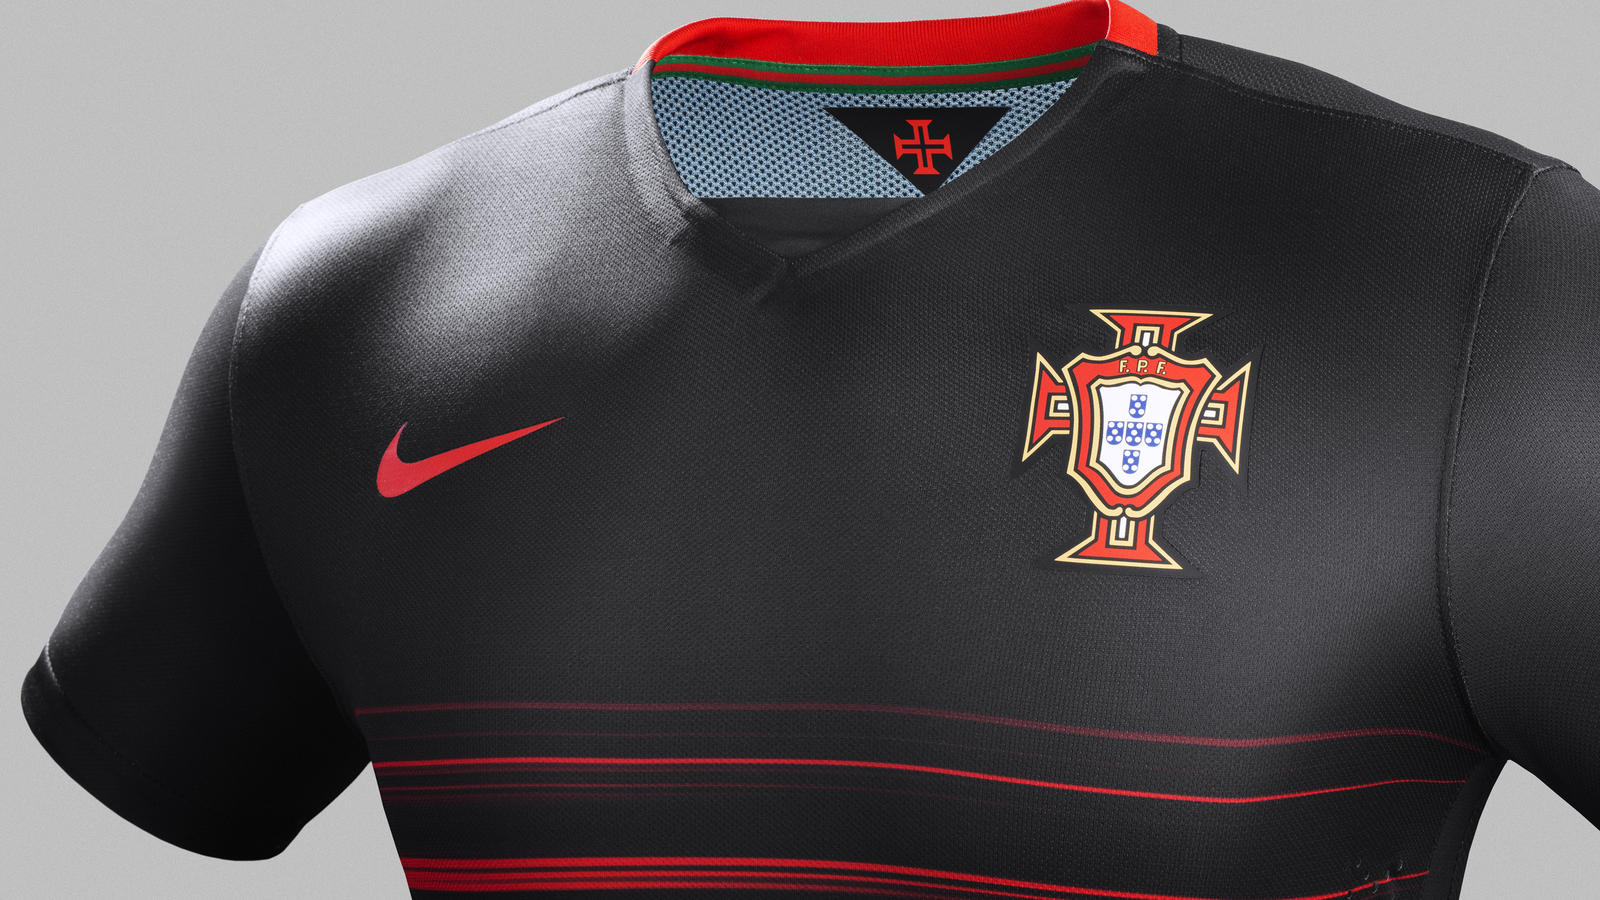 Portugal Away Jersey - Chest